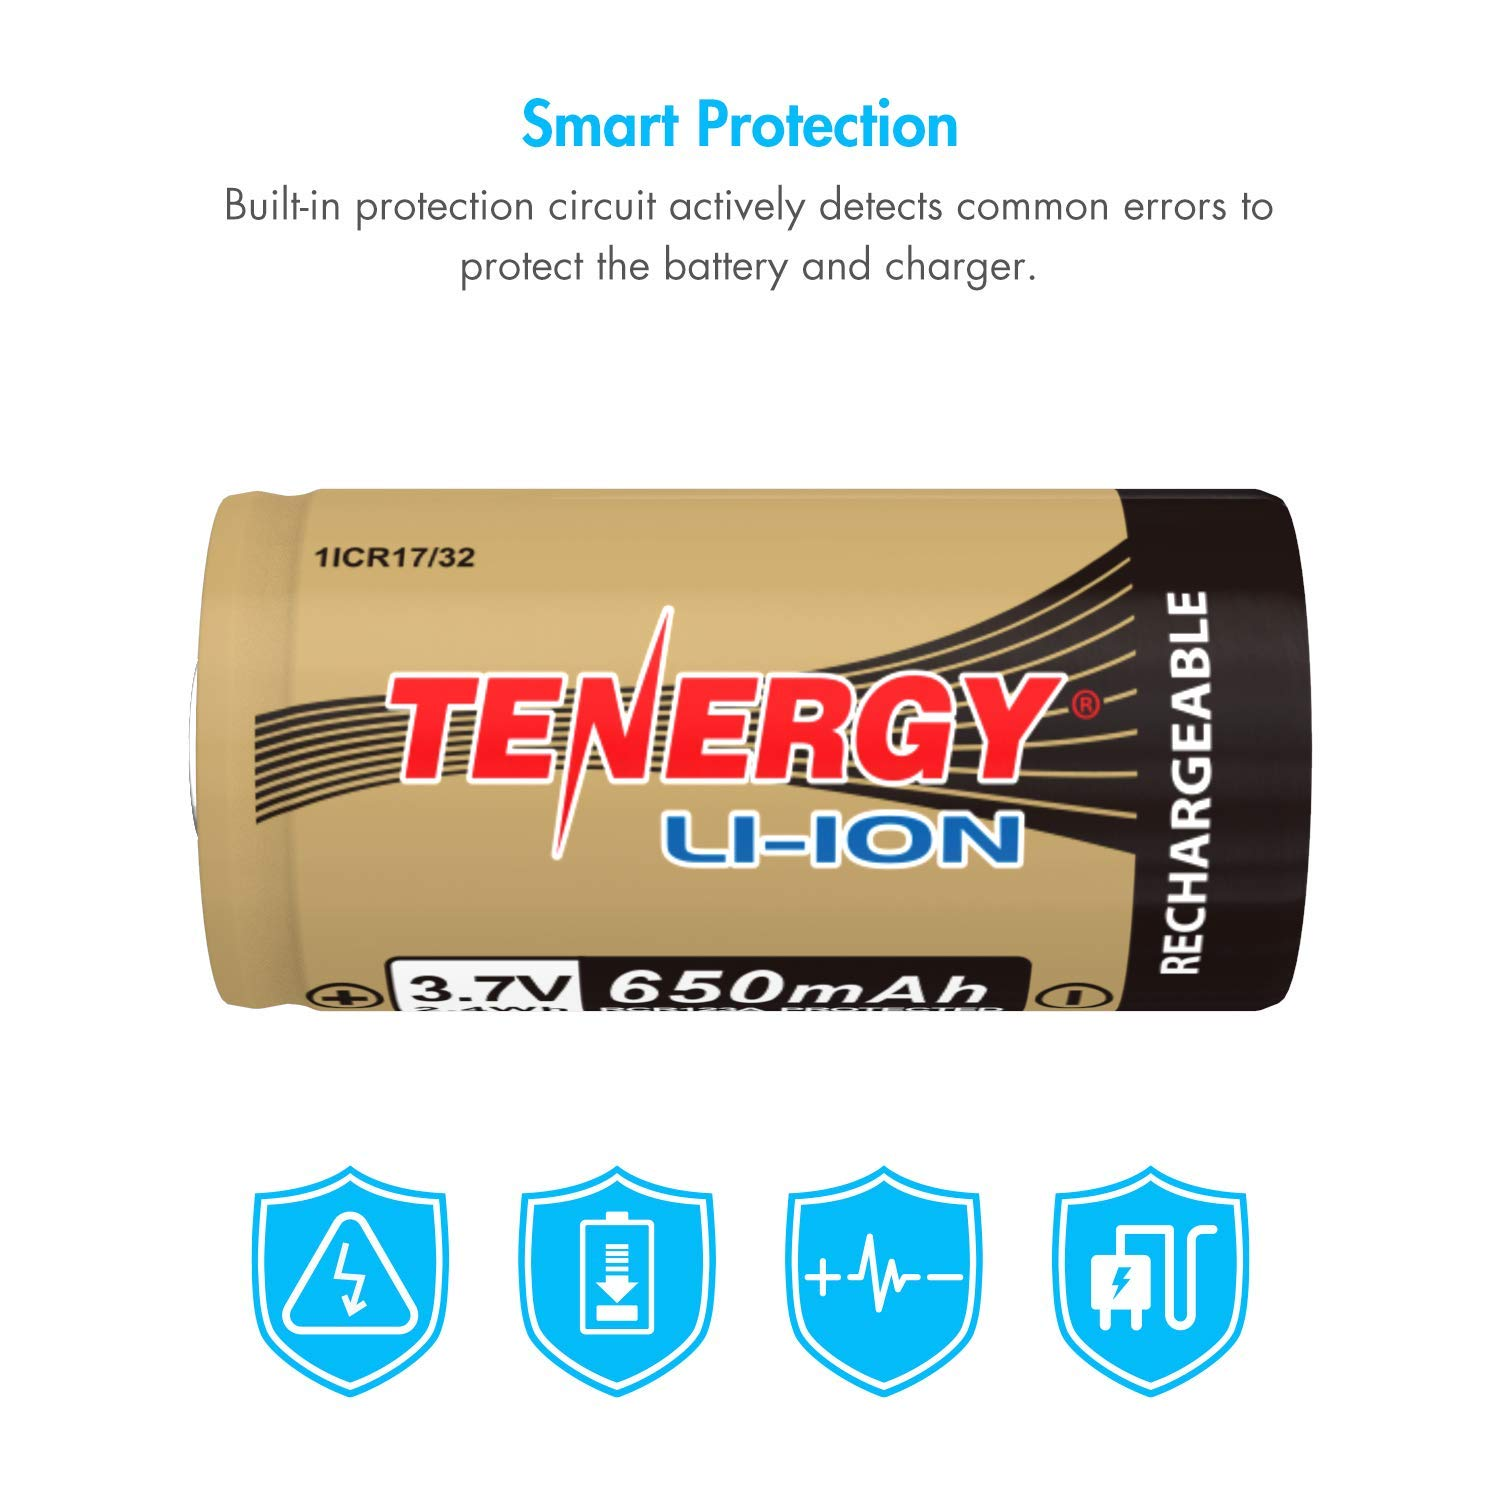 Tenergy Arlo Certified 37v Li Ion Rechargeable Battery Details About 3 X Case 18650 Box With Protection Circuit For Security Cameras